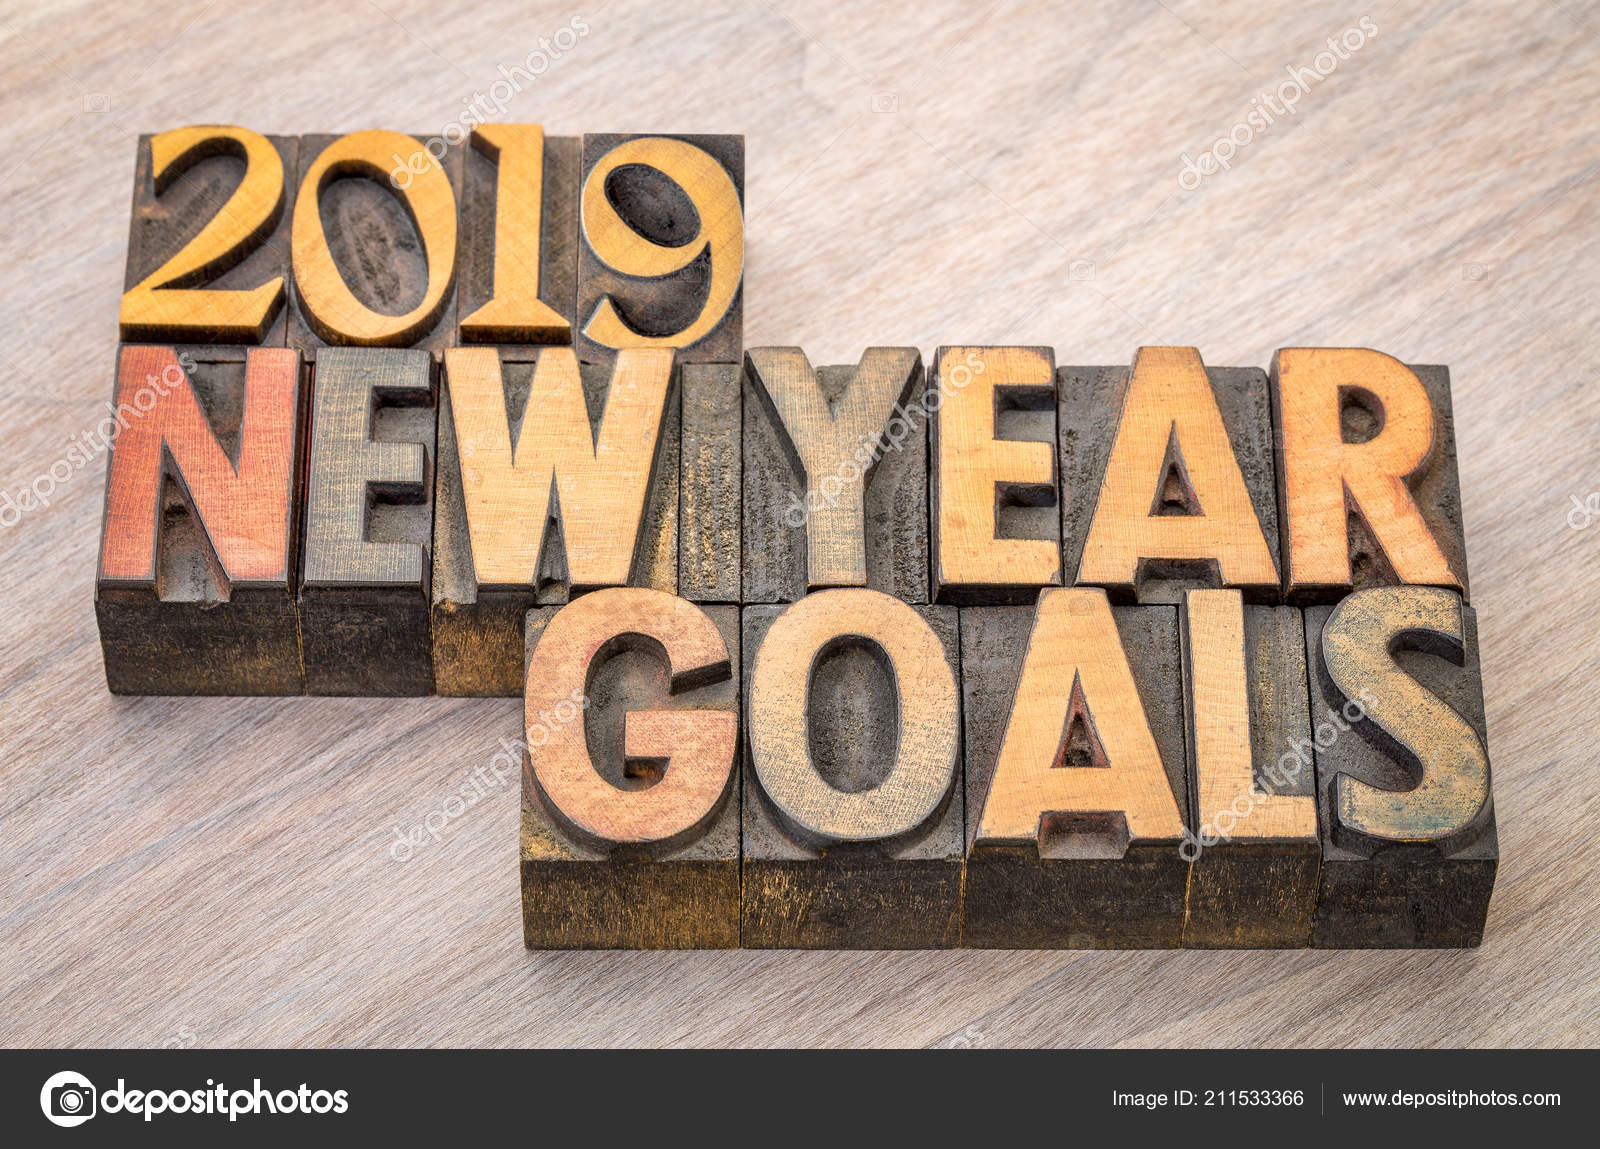 depositphotos_211533366-stock-photo-2019-new-year-goals-word.jpg